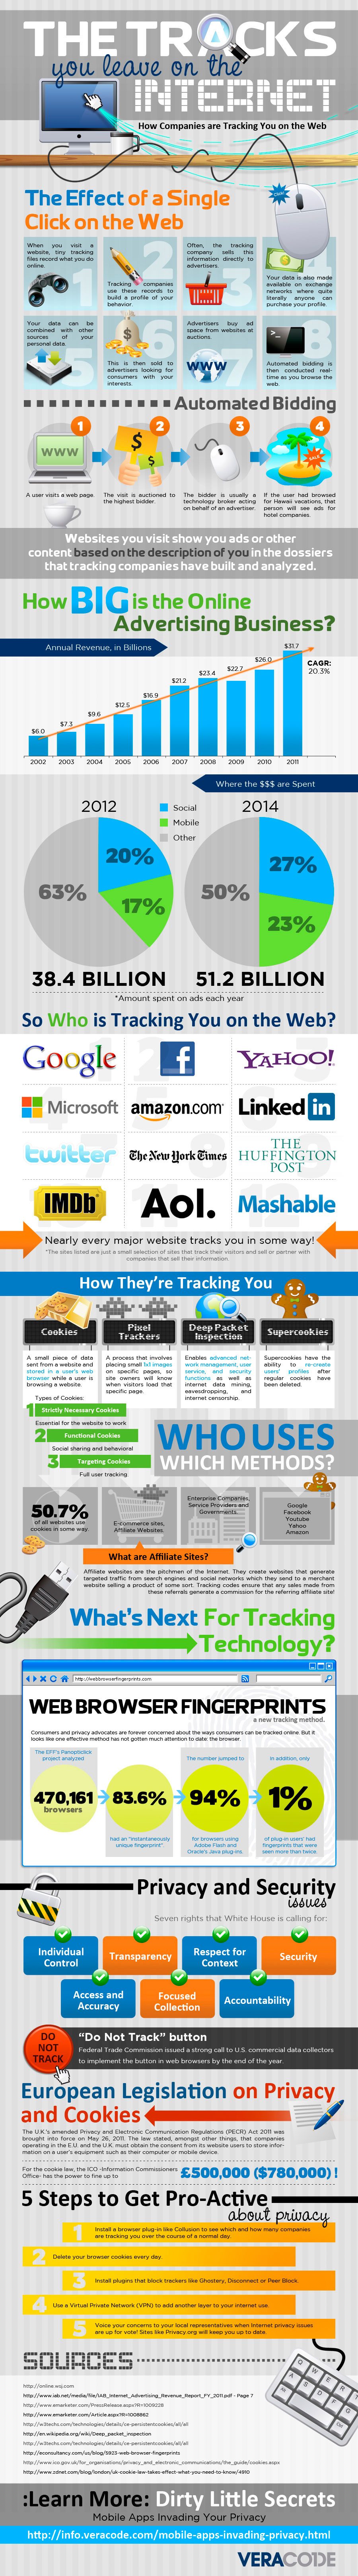 How Internet Tracking Works-Infographic